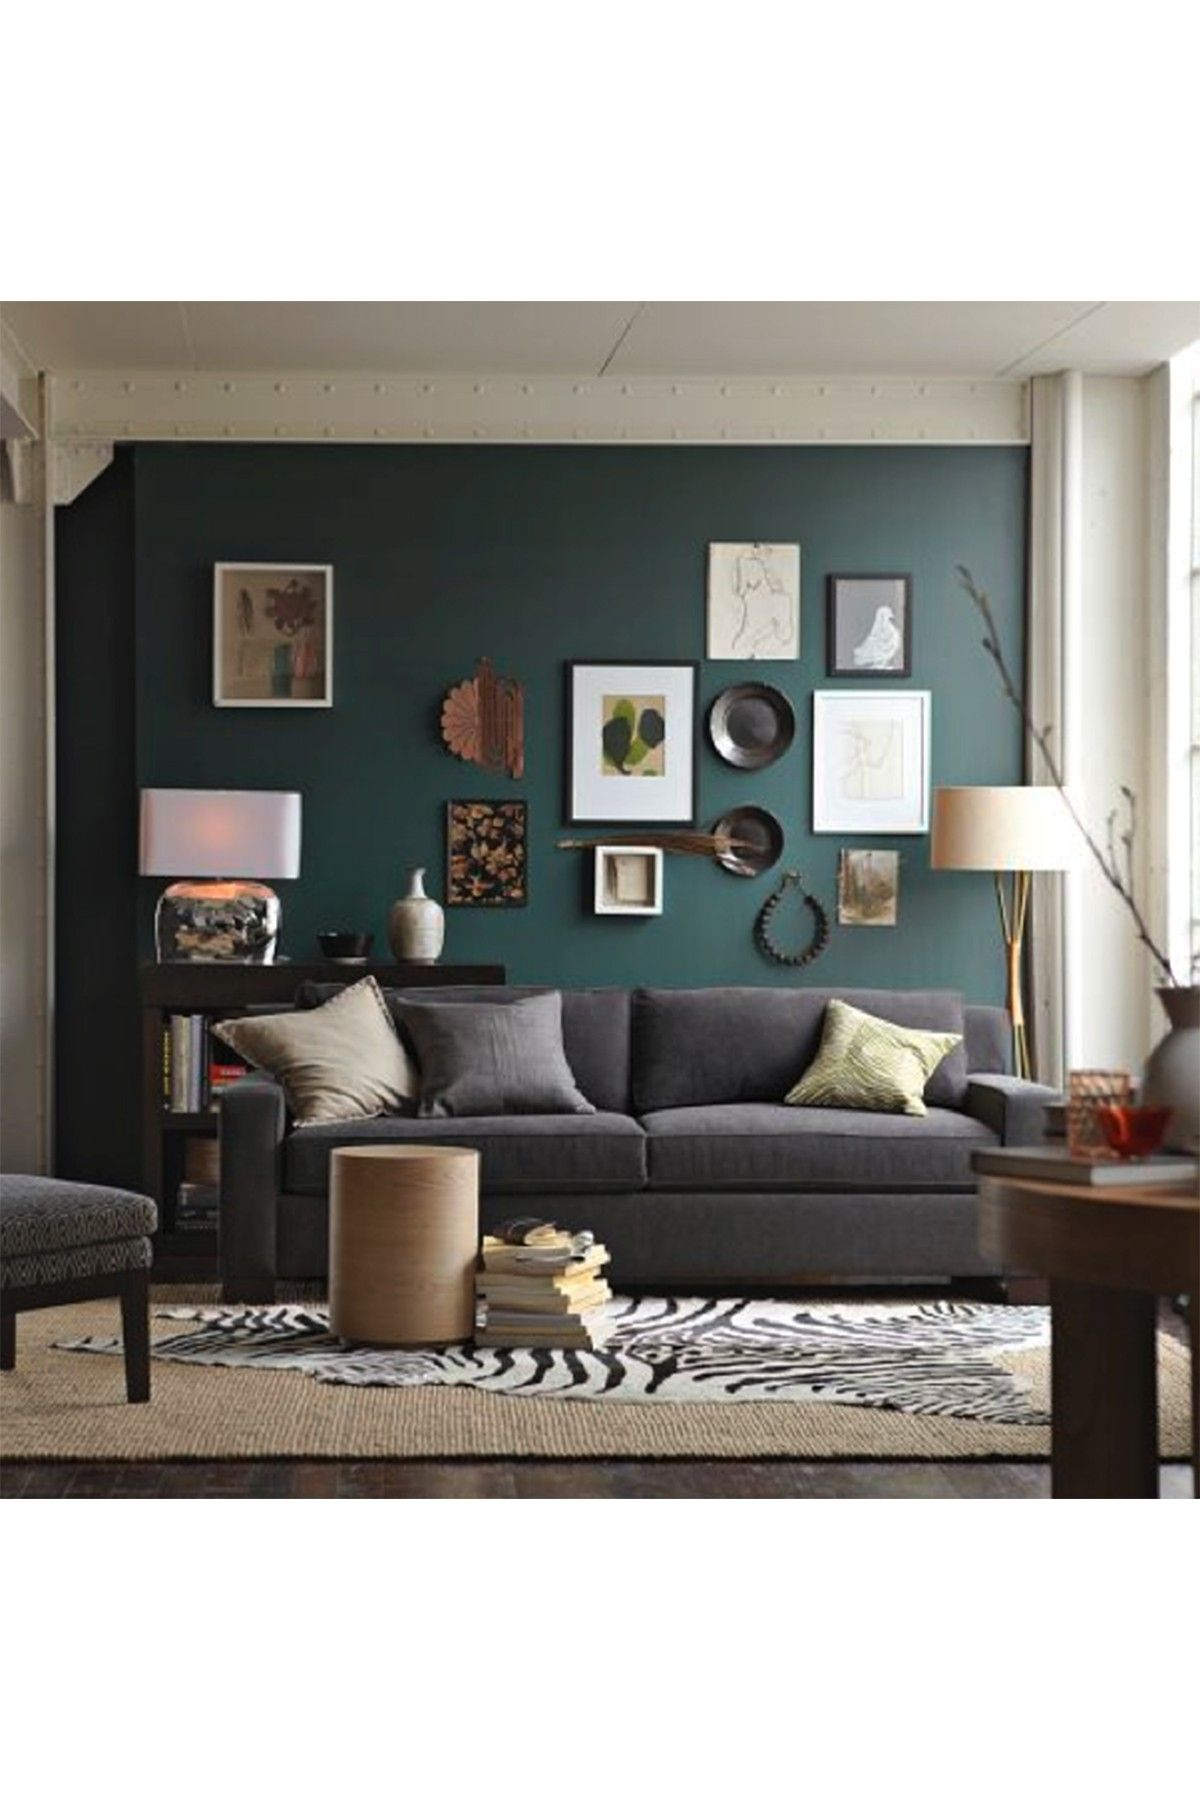 ten colorful ways to decorate your home without paint accent colors decorating and wall colors. Black Bedroom Furniture Sets. Home Design Ideas